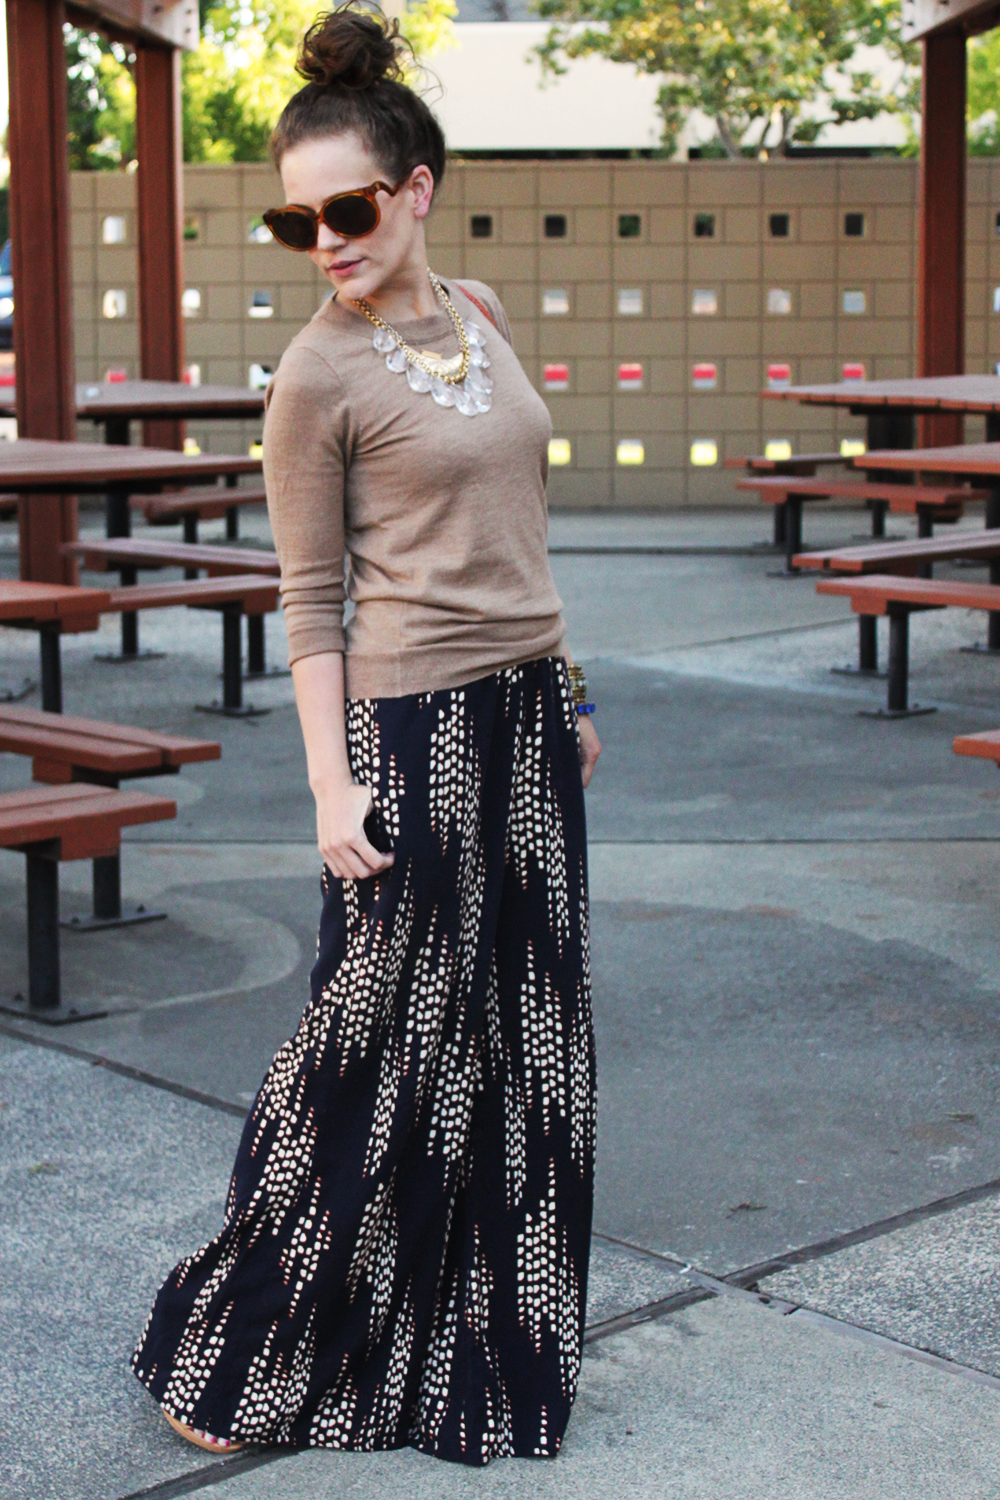 How To Wear Wide Leg Pants For Fall Maxi Skirt Outfits Maxi Outfits Fashion [ 1500 x 1000 Pixel ]